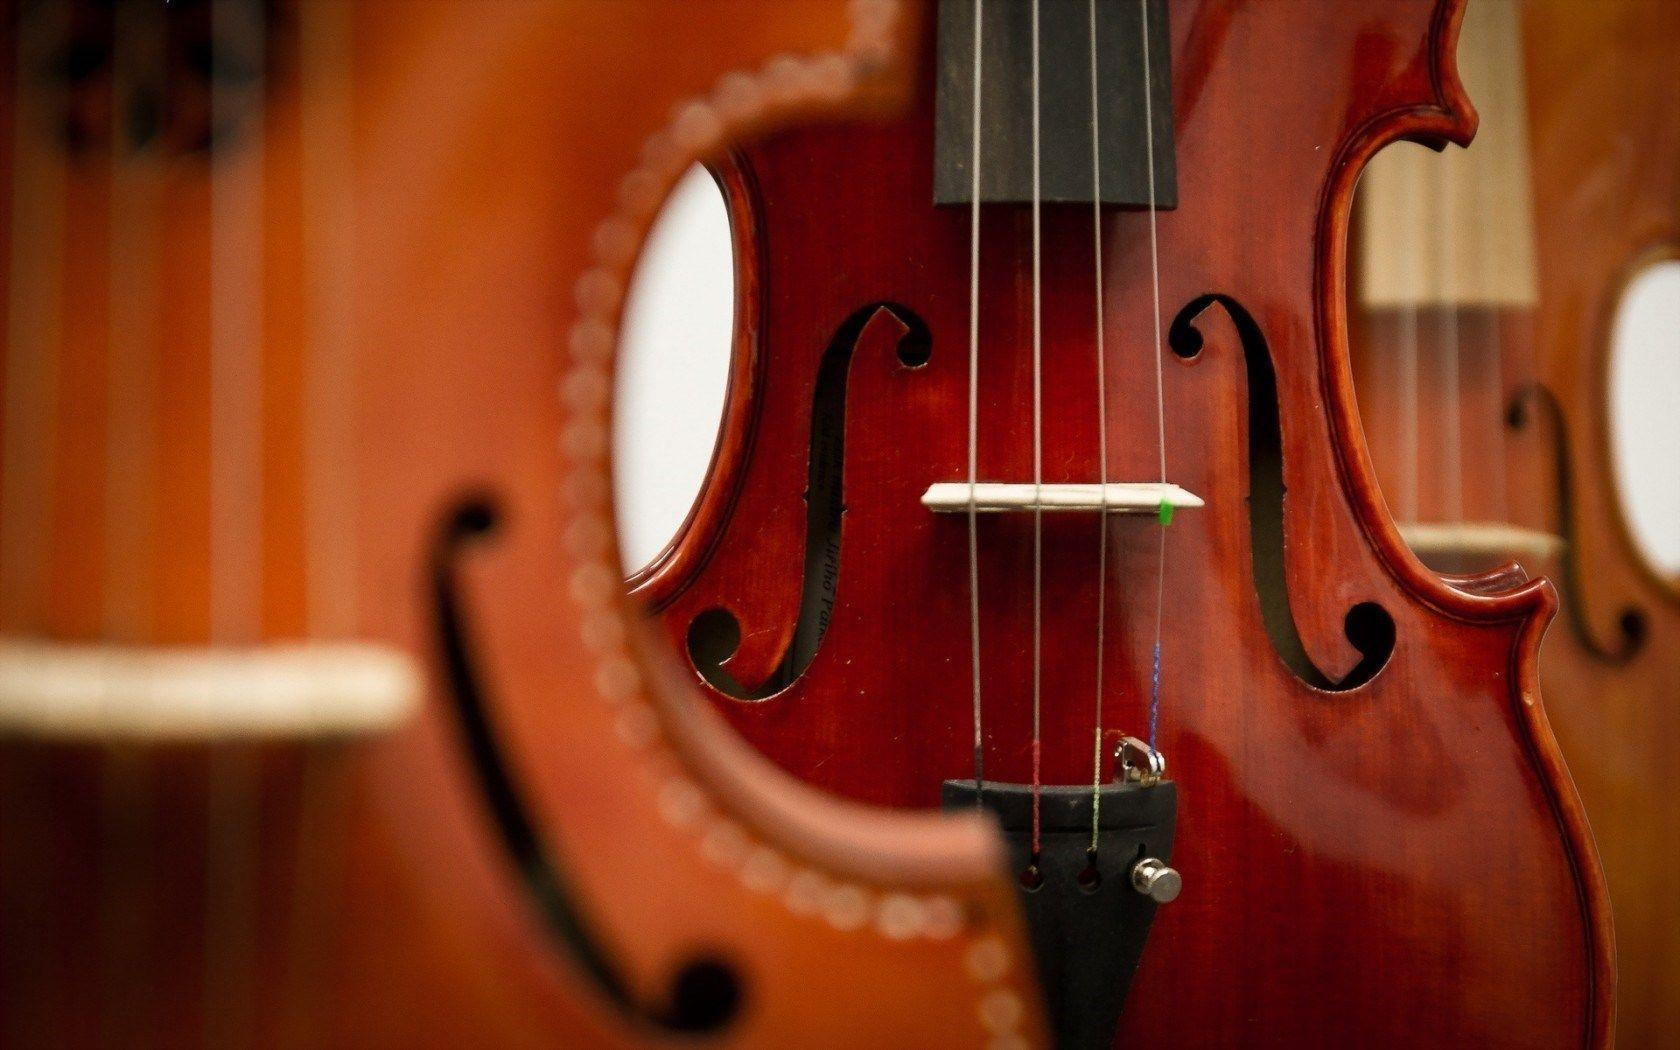 Violin Music HD Wallpaper - ZoomWalls